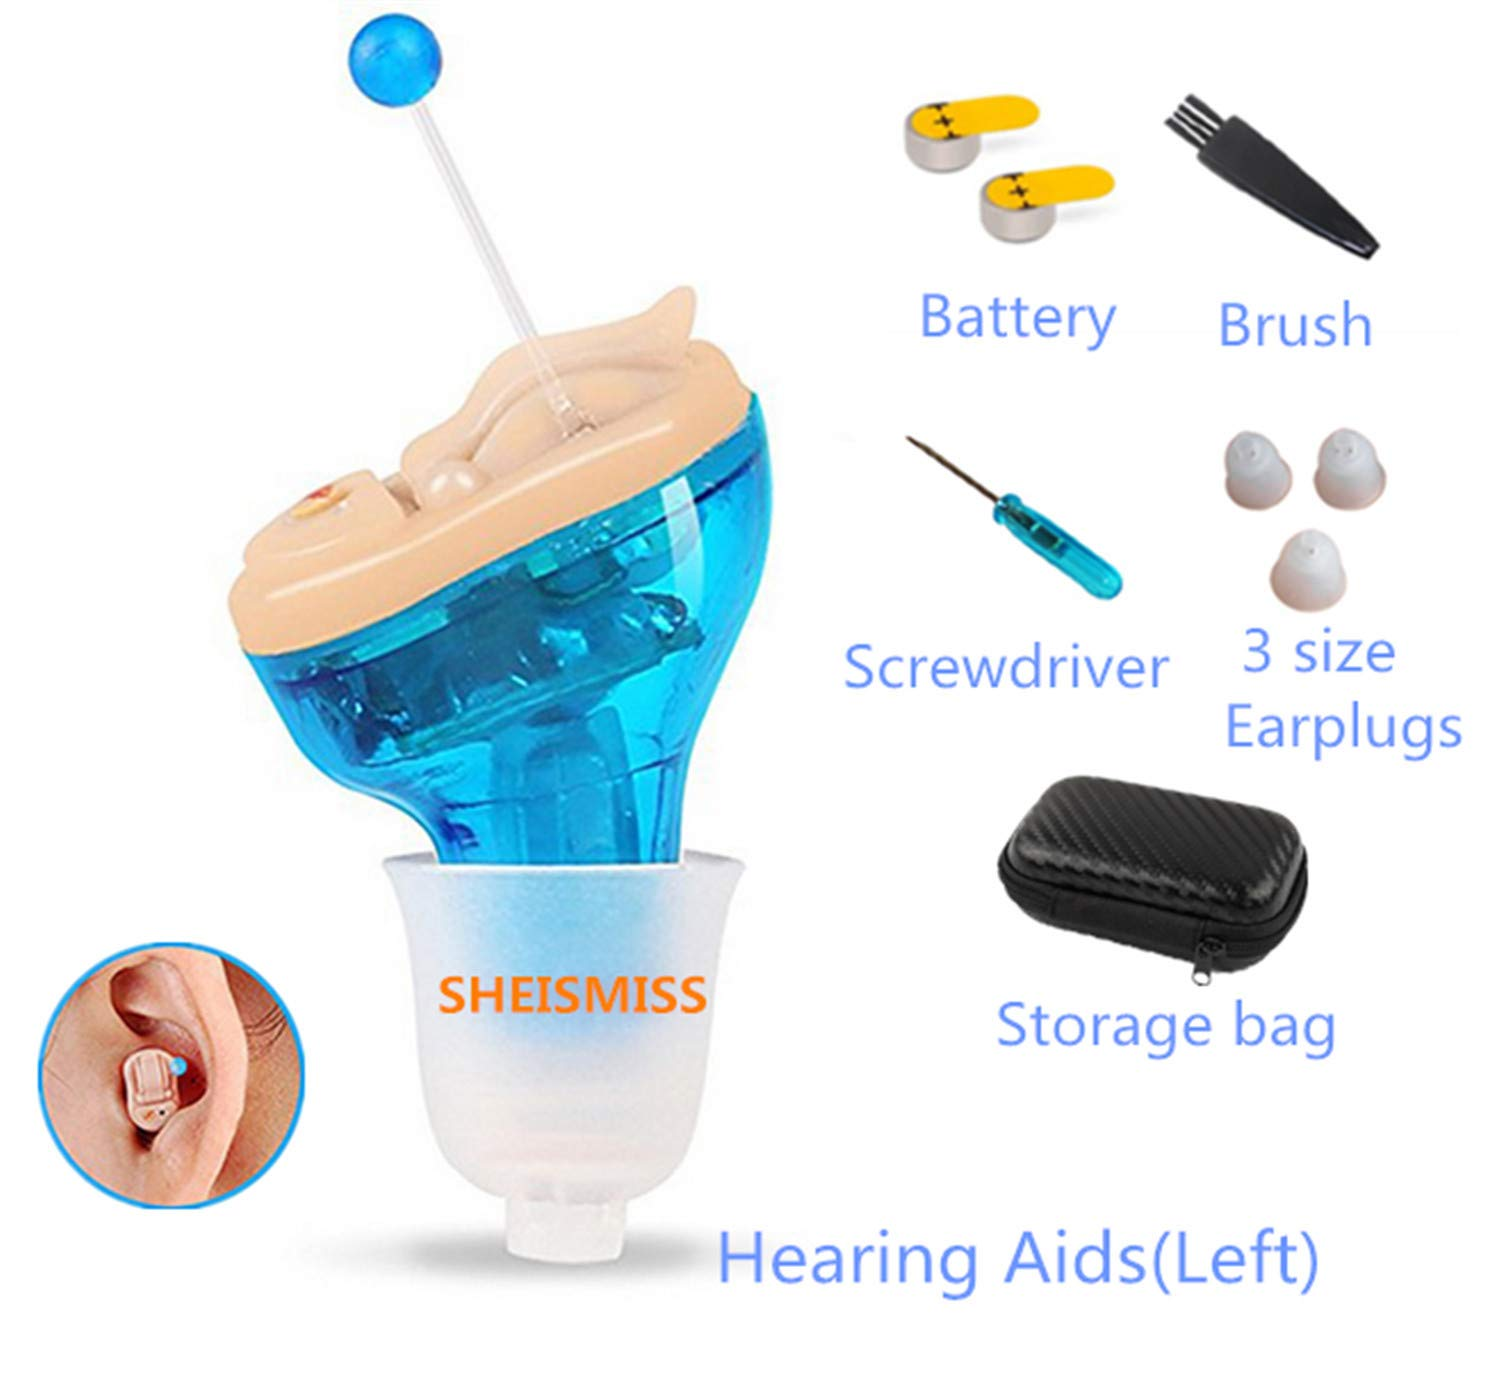 Hearing Amplifiers Hearing aid Earpiece Ear Aids Micro Mini Invisible Wireless BTN Inner Ear Deaf Aid Low Noise Hearing Device Digital Tone Sound Amplifier Elderly Parents Magnifier Gift (L) by SHEISMISS